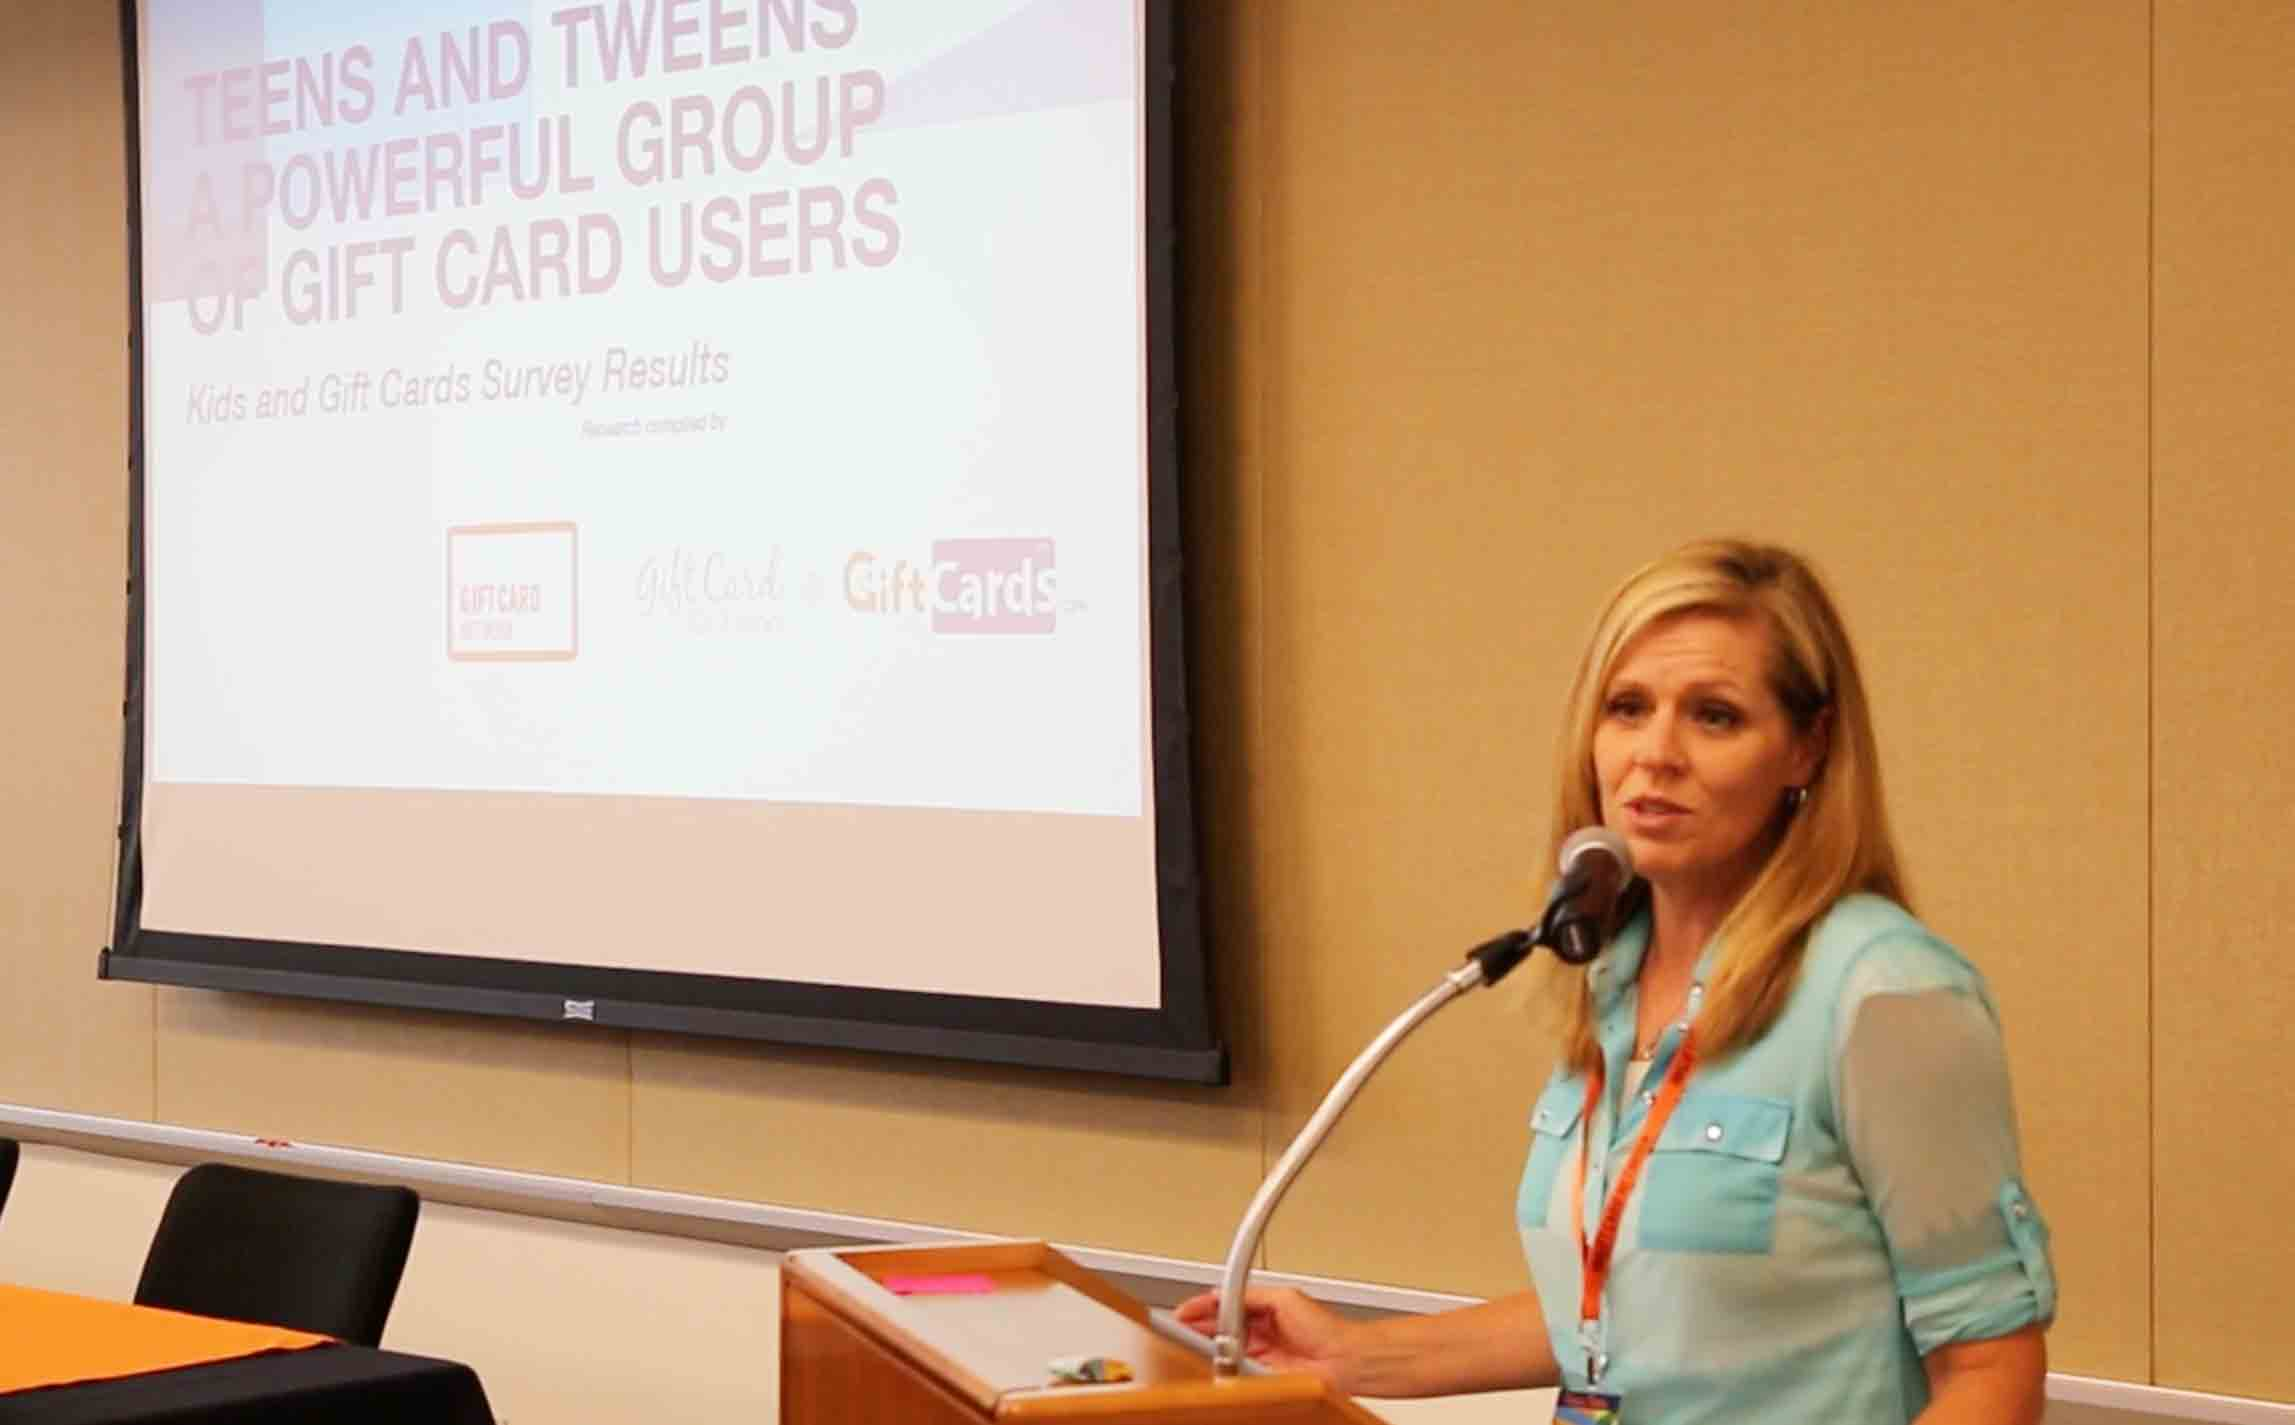 shelley presenting at Gift Card Network Summit